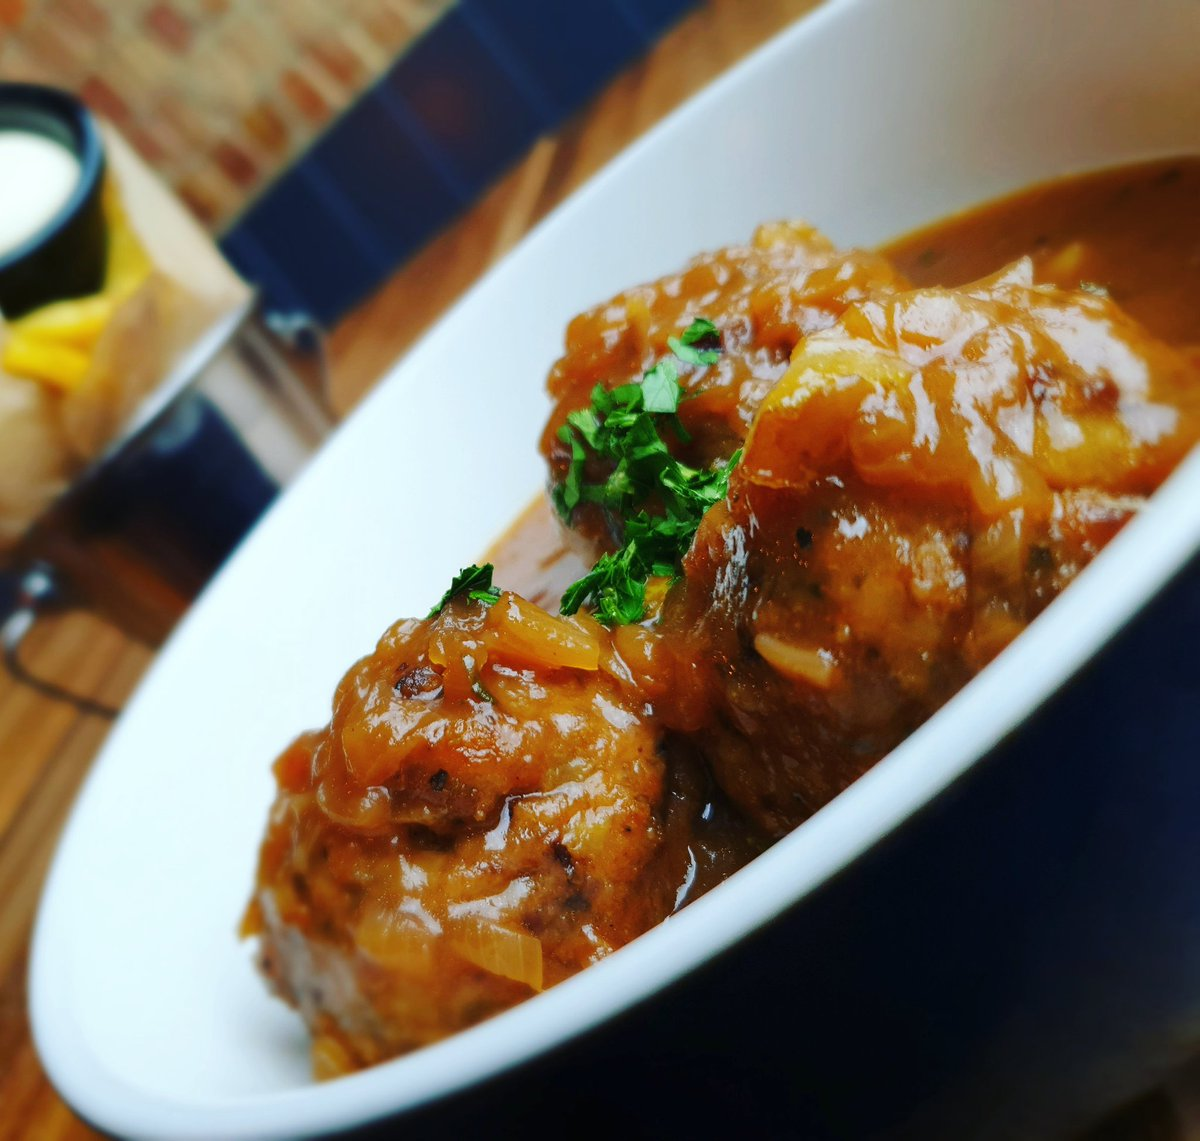 NEW SPECIAL LIÉGEOISE MEATBALLS Homemade pork and beef meatballs in an onion, HUIS Blonde beer, pear and apple butter sauce, served with twice cooked Belgian frites and mayo #liegemeatballs #meatballs #cookingwithbeer #belgianfood #eatingout #portsmouth #southsea #huissouthsea